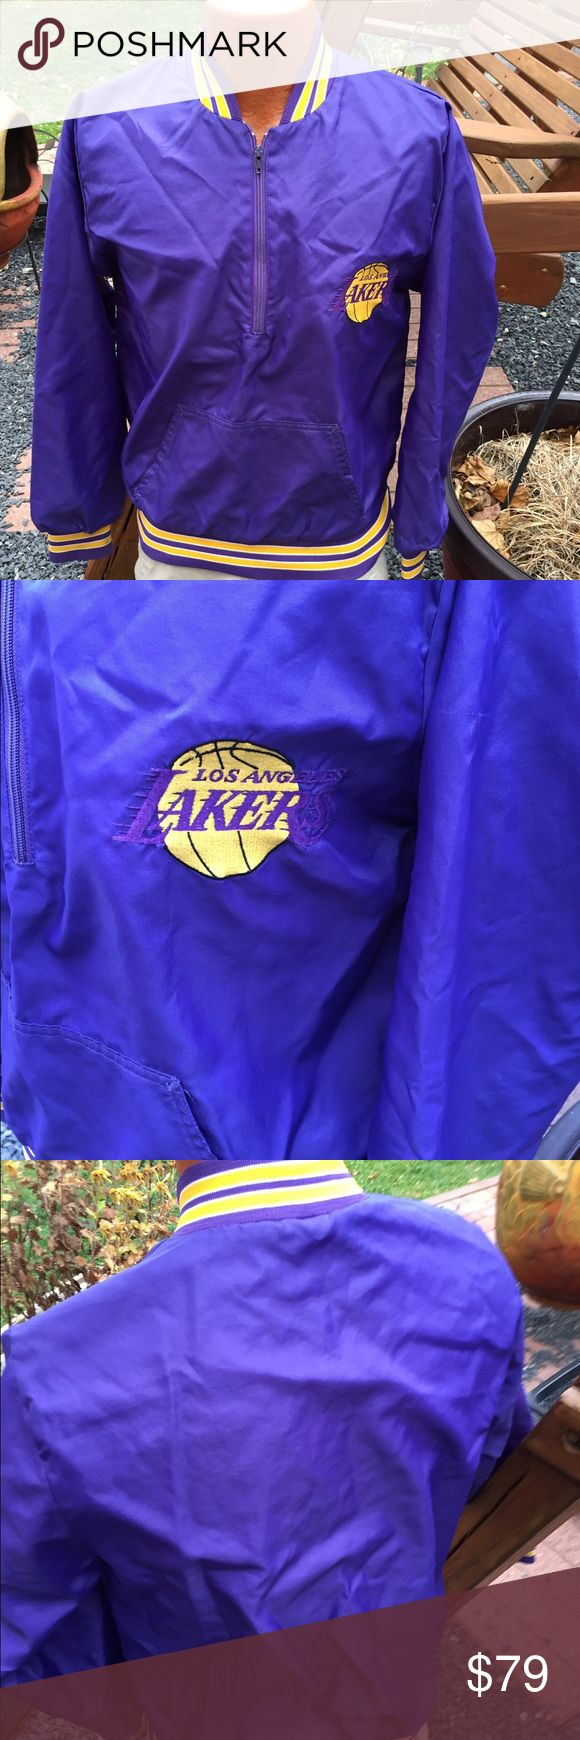 """Vintage Throwback Los Angeles LA Lakers Jacket Size small. No tag indicating maker. measures: shoulder to shoulder: 17"""". Pit to pit: 20"""". Bottom of the collar in the back to the bottom of the jacket: 25"""". 1/2 Zip Pullover Unknown Jackets & Coats"""